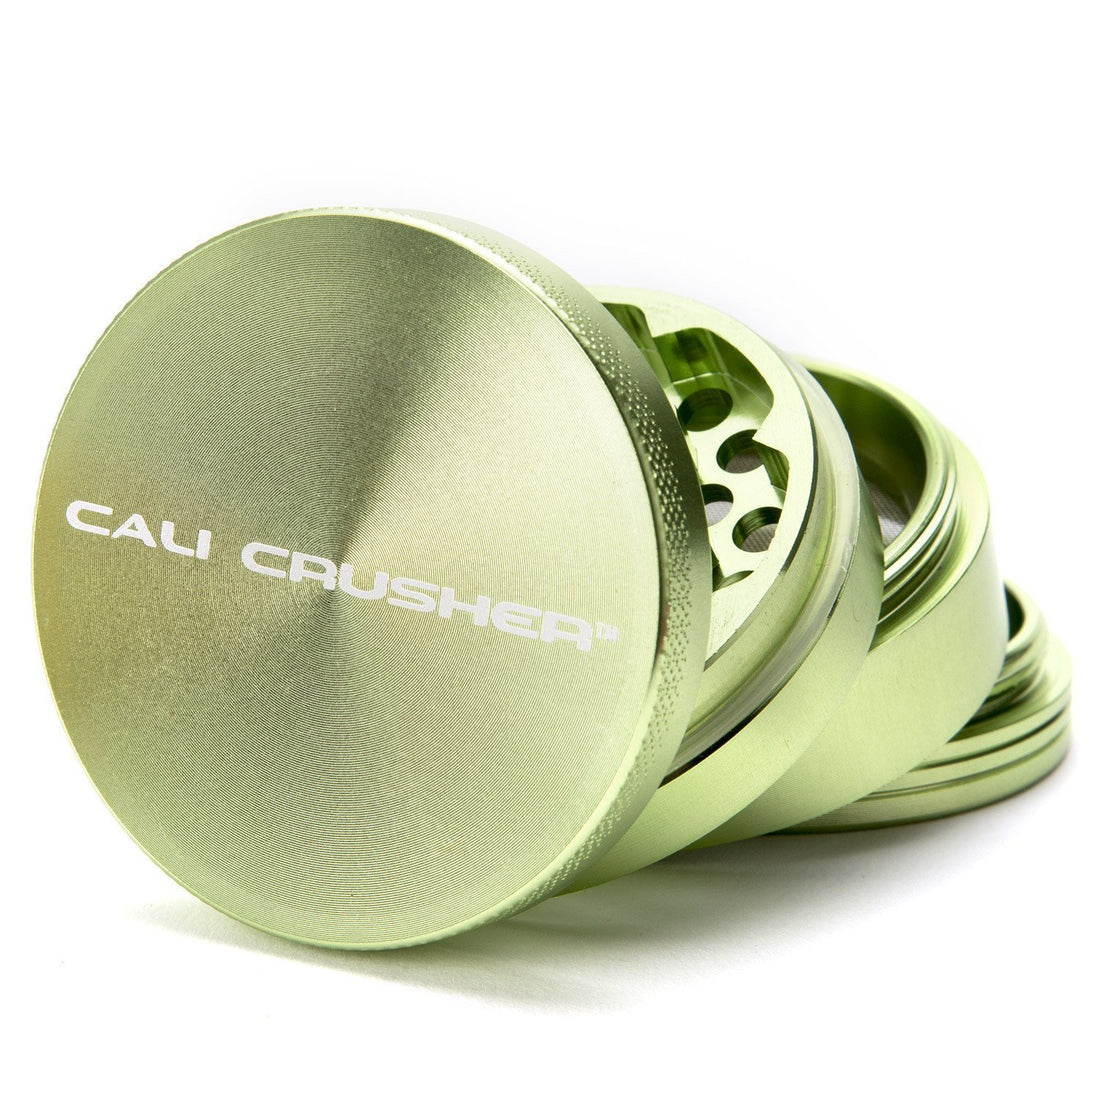 Cali Crusher OG 2.5in 4pc Solid Top - 420 Science - The most trusted online smoke shop.